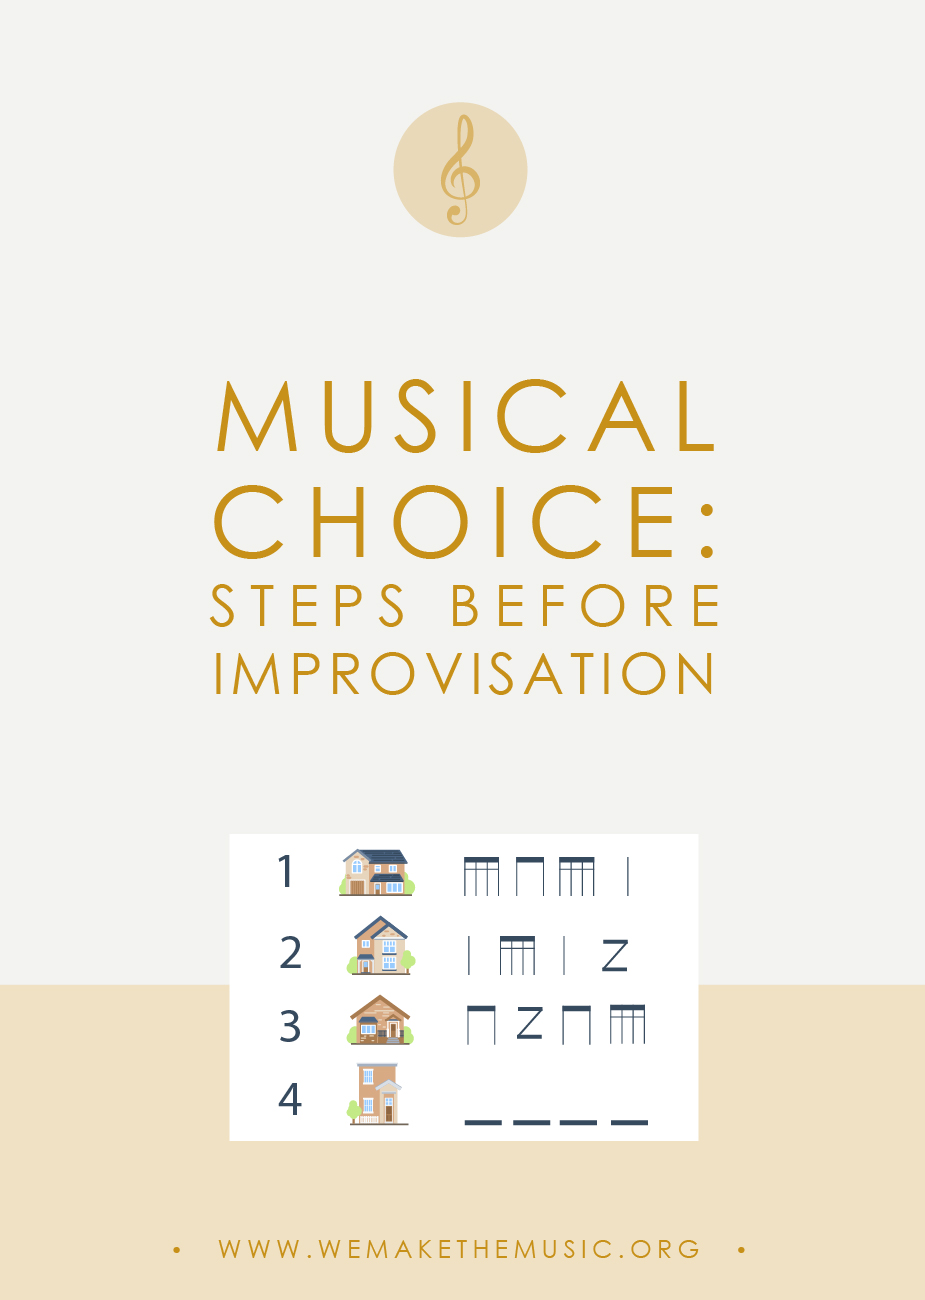 Musical Choice: Steps to Take Before Improvisation